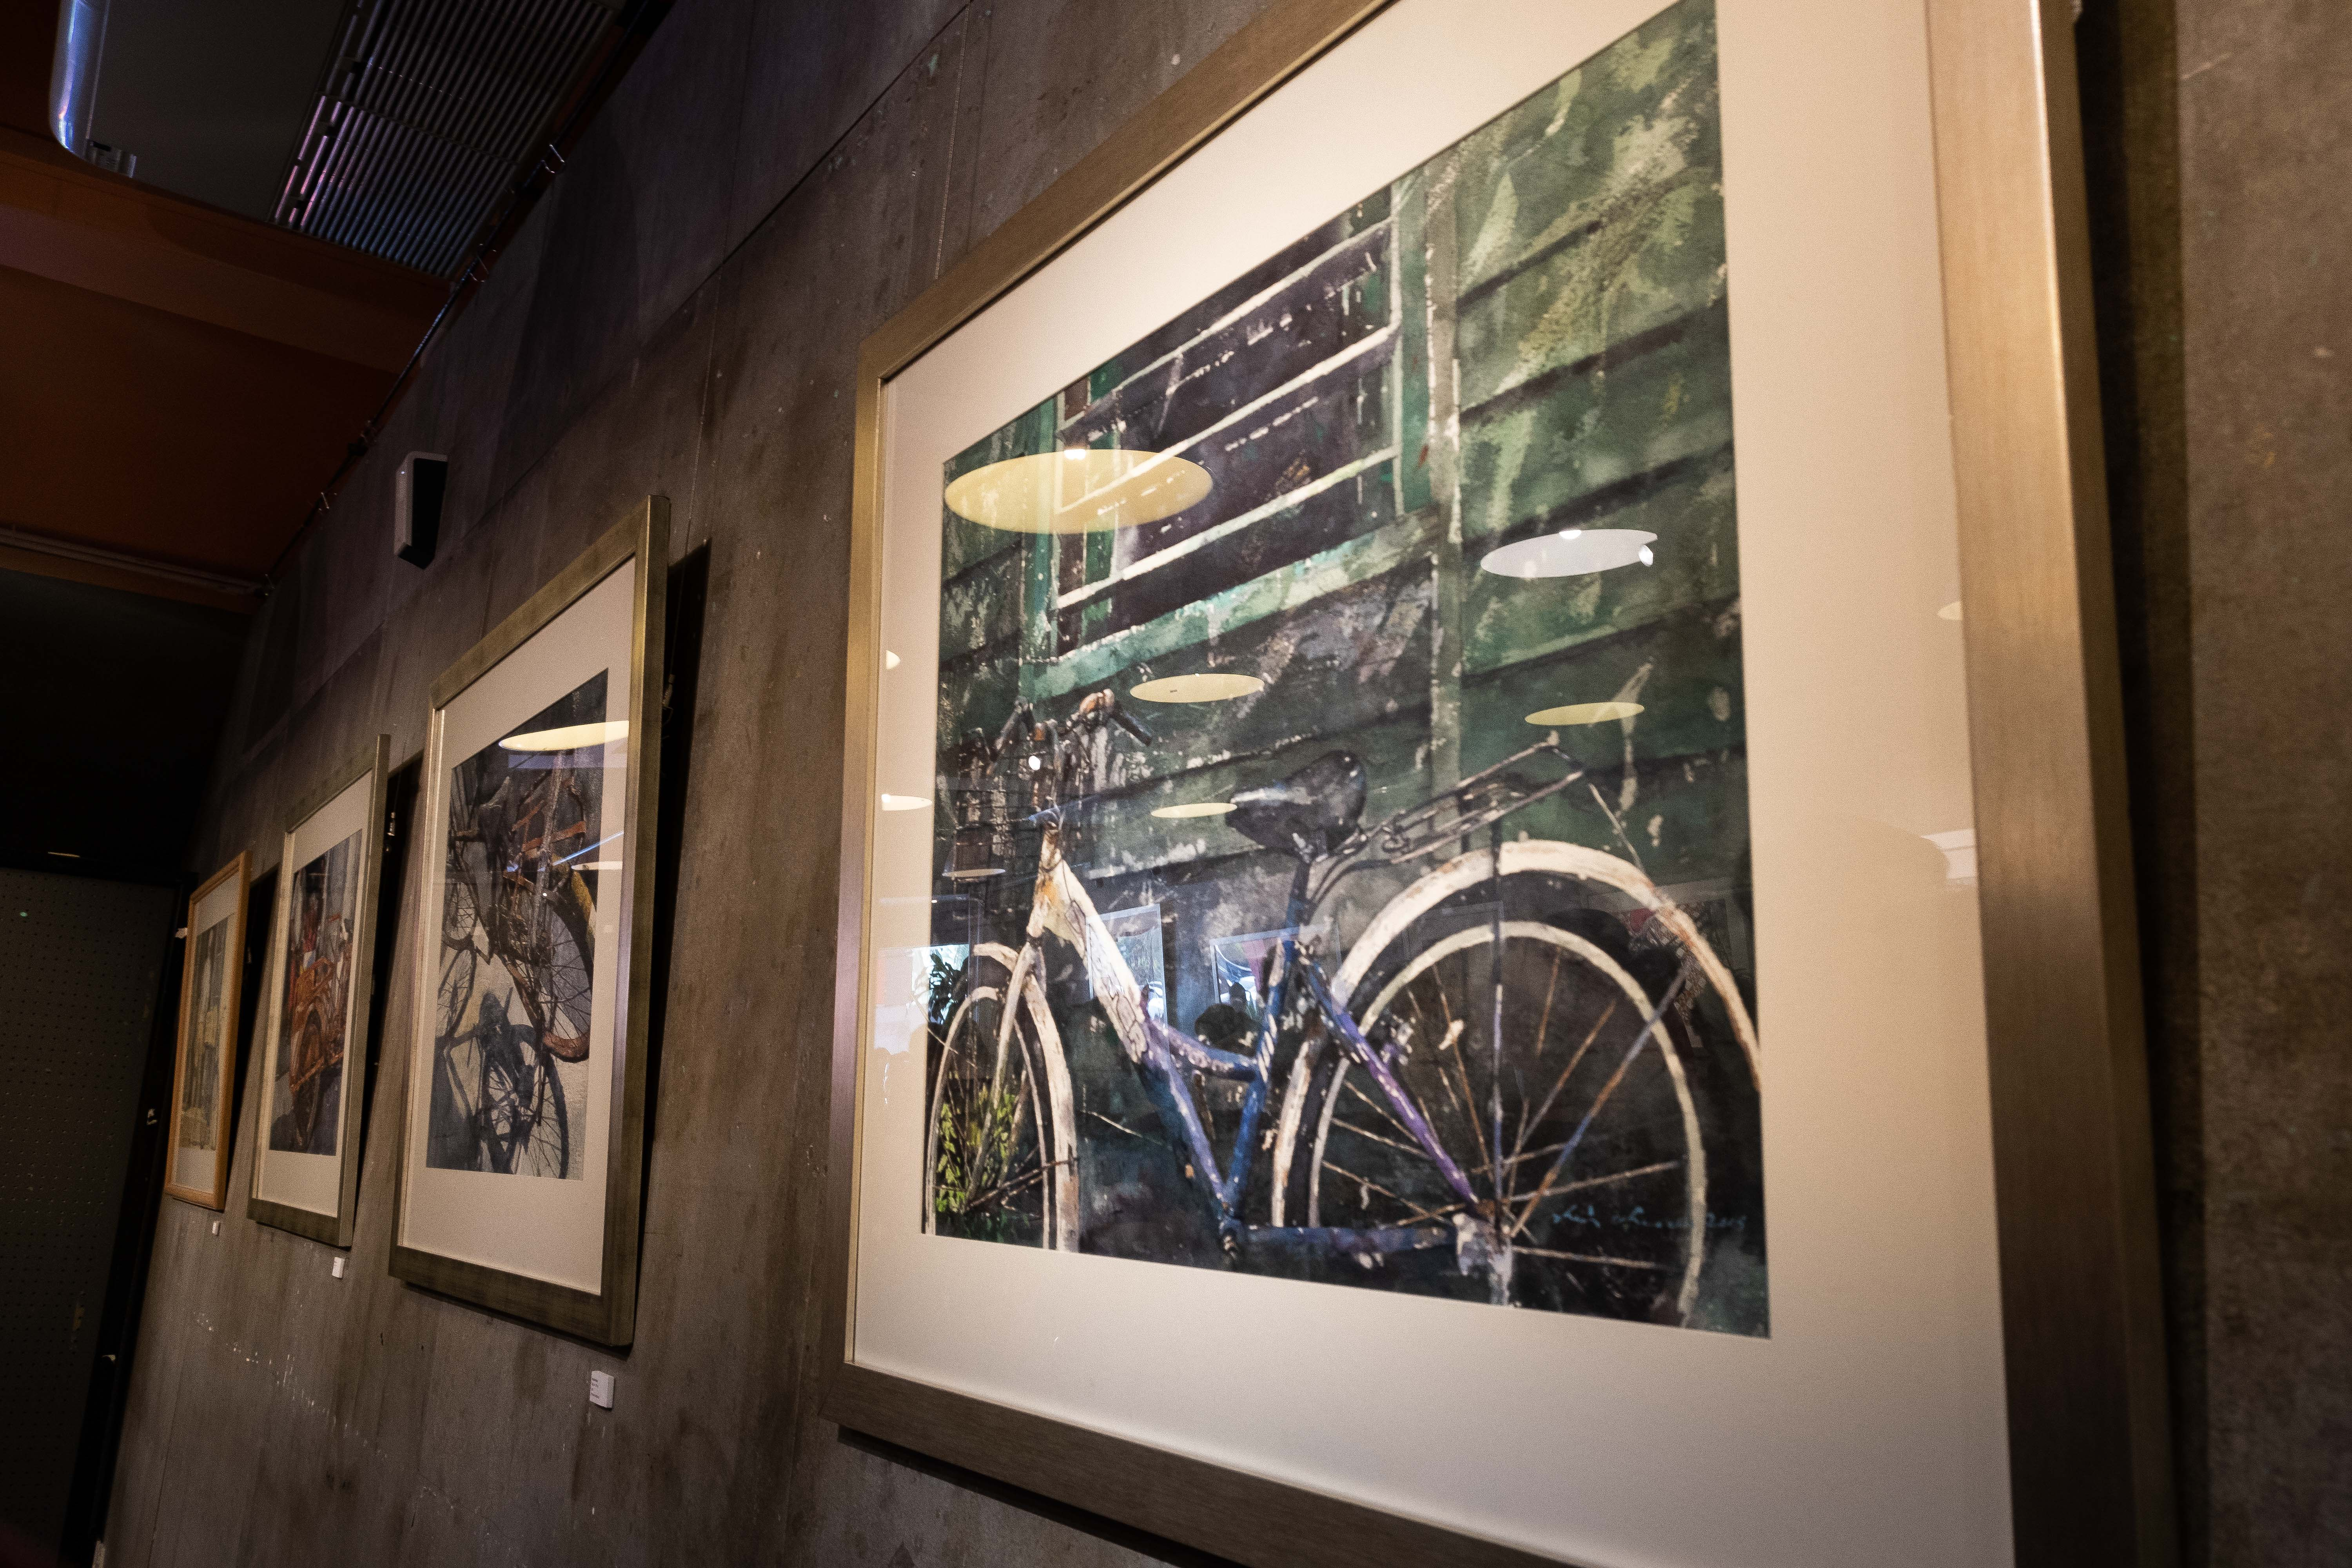 A few pieces on Chow Chin Chuan's favorite subject matter, the bicycle